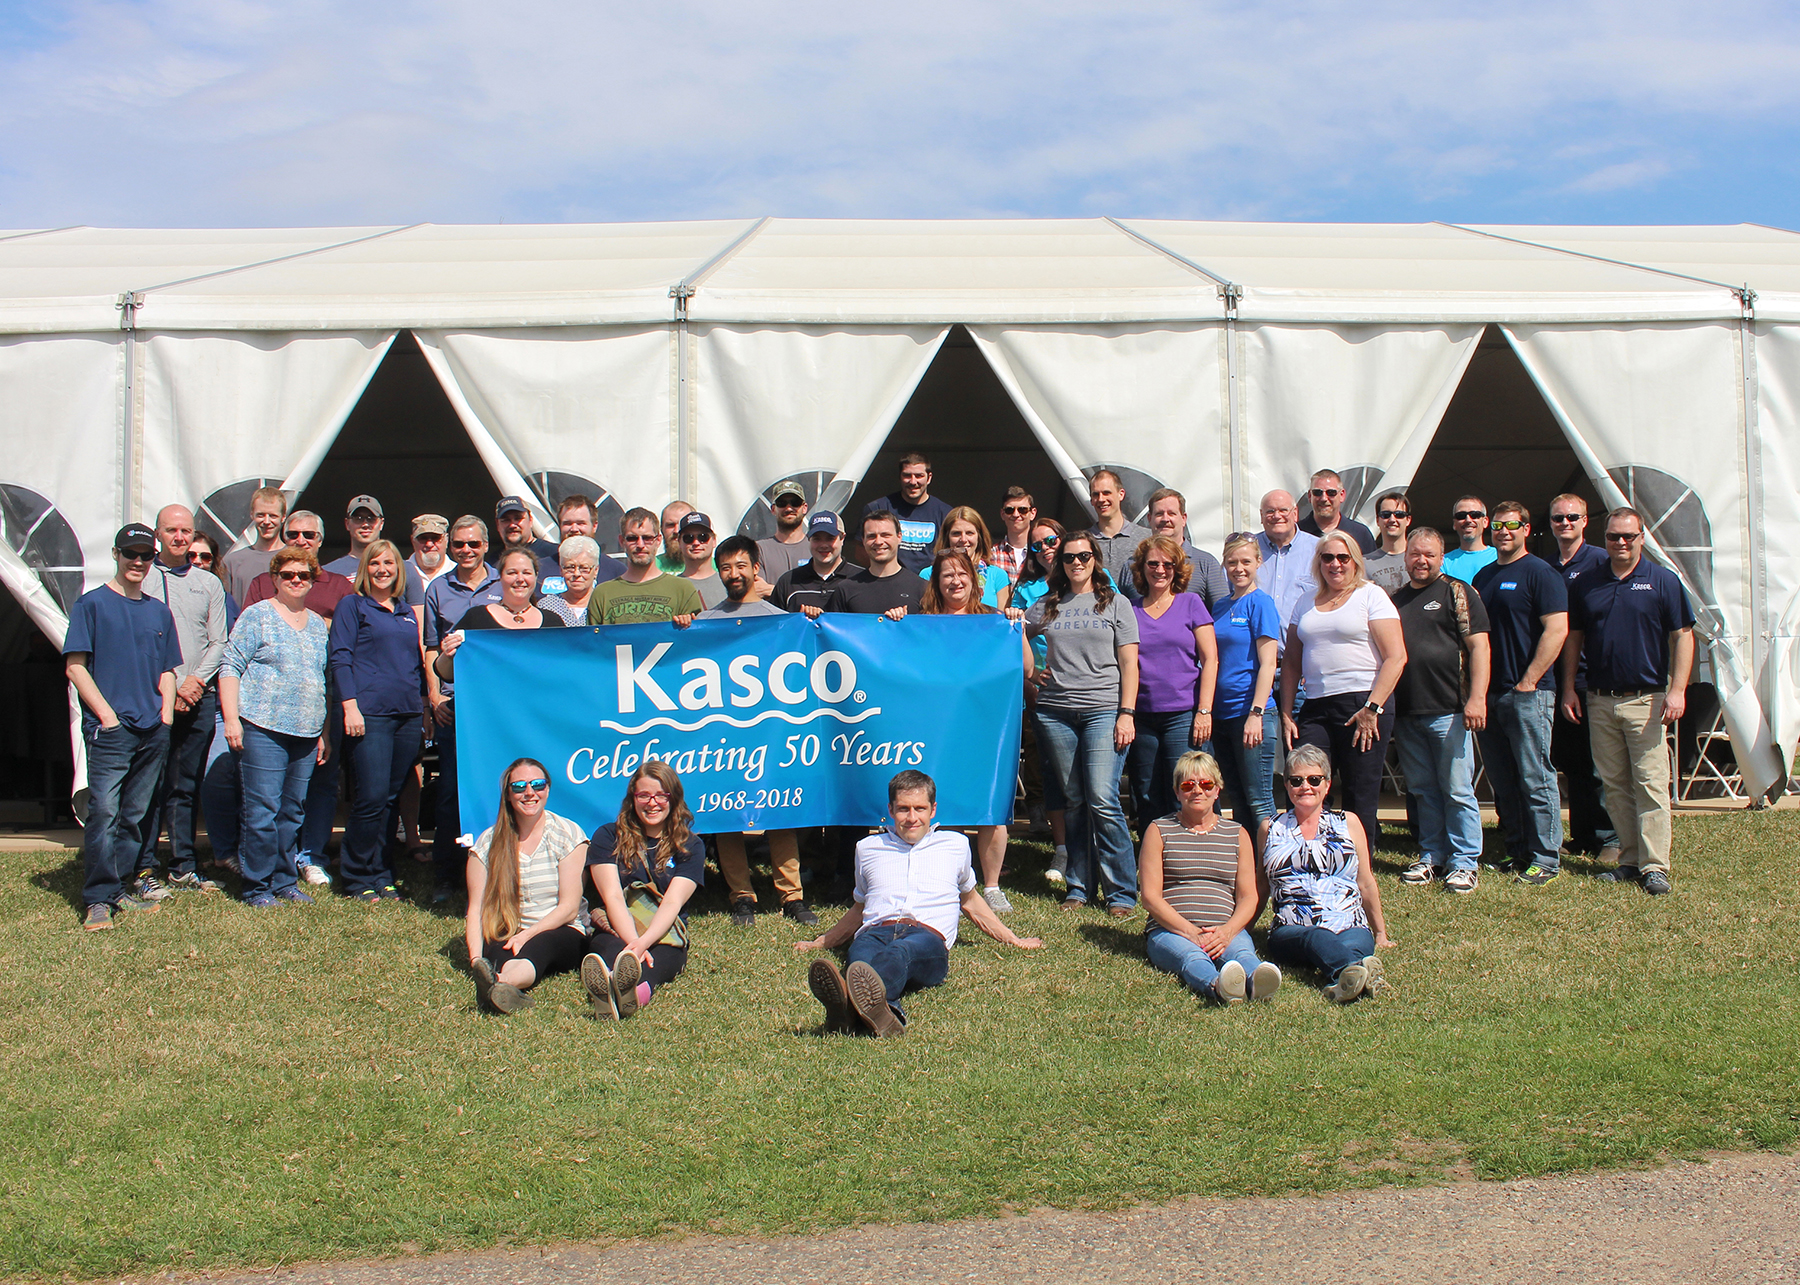 Kasco 50th Anniversary Celebration